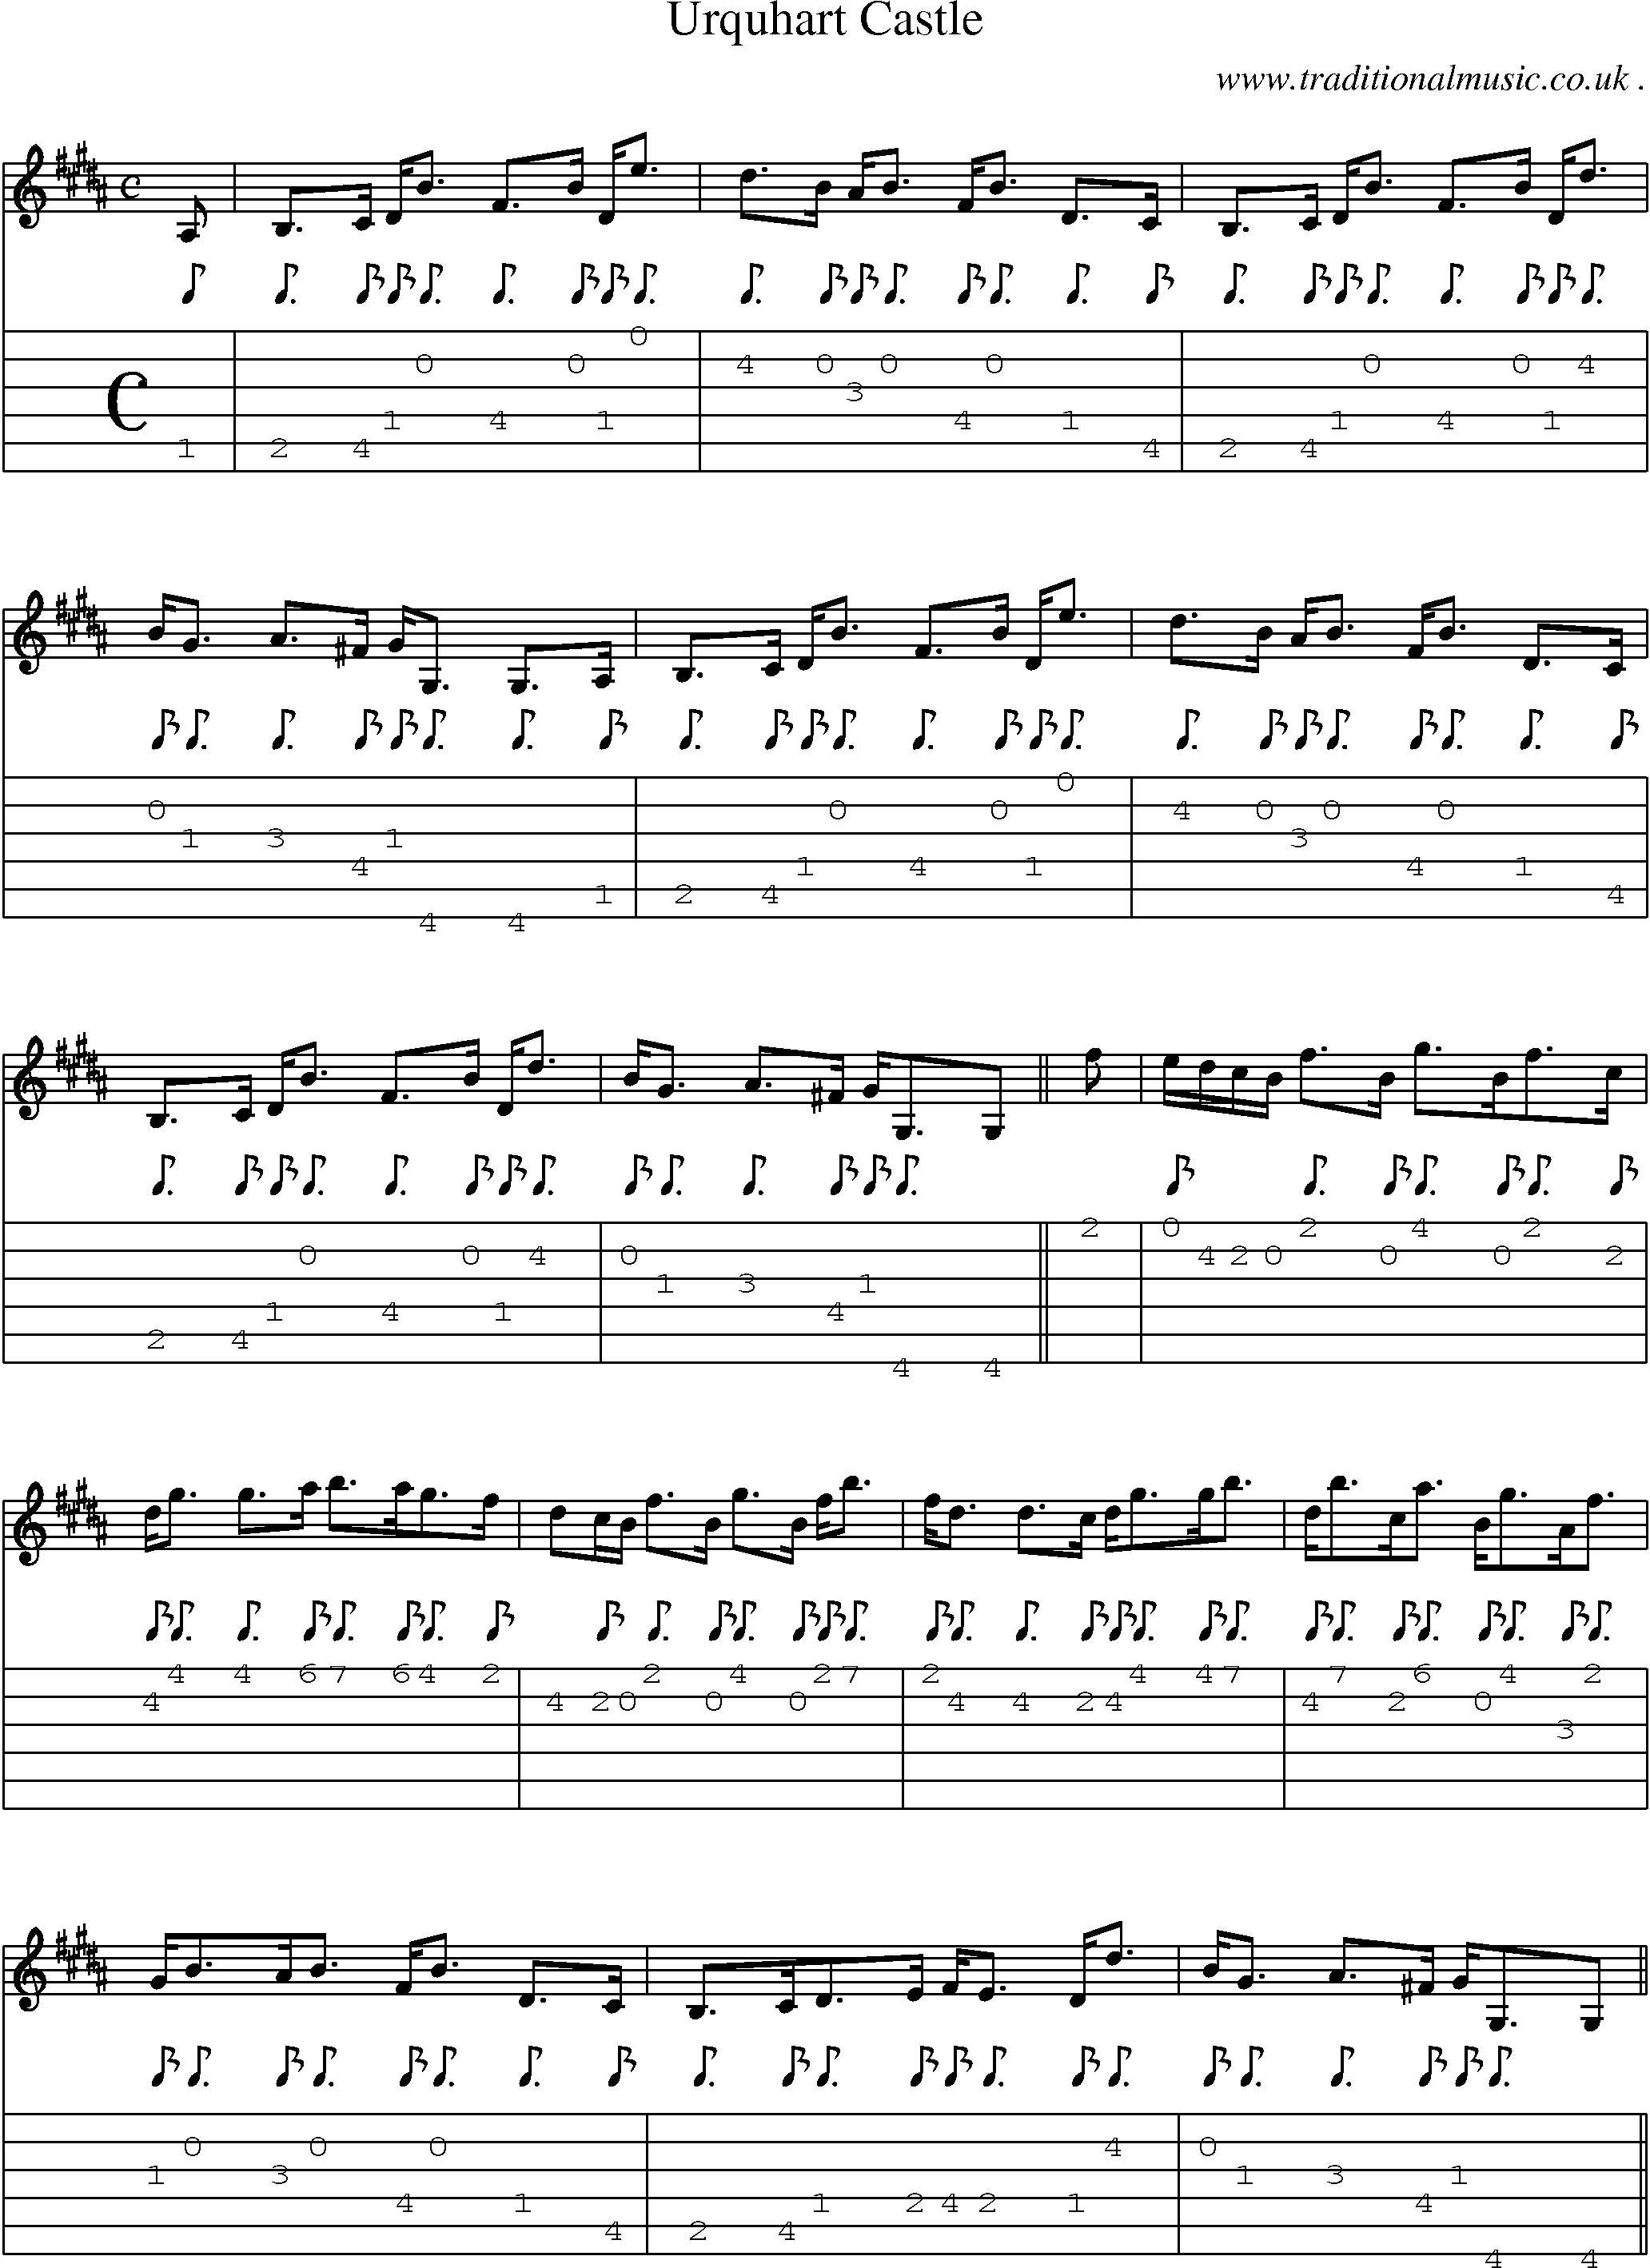 Scottish Tune Sheetmusic Midi Mp3 Guitar Chords Tabs Urquhart